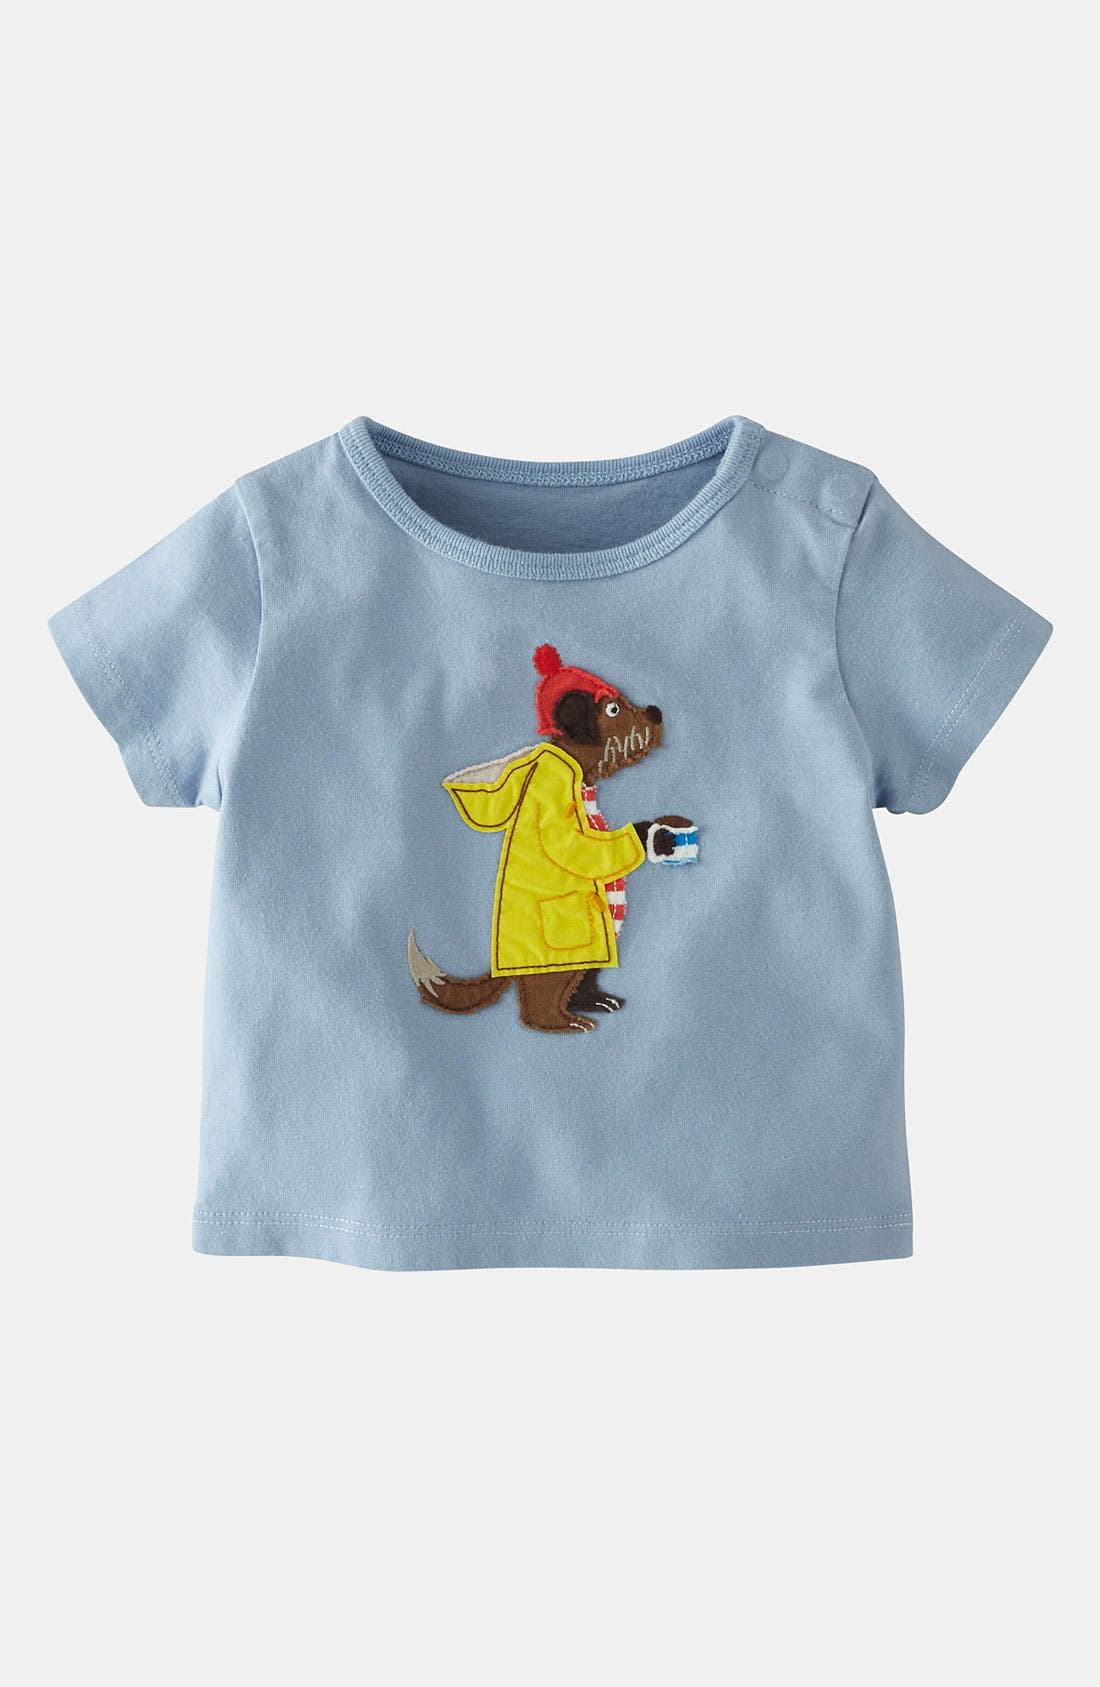 Alternate Image 1 Selected - Mini Boden 'Vintage Animals' T-Shirt (Baby)